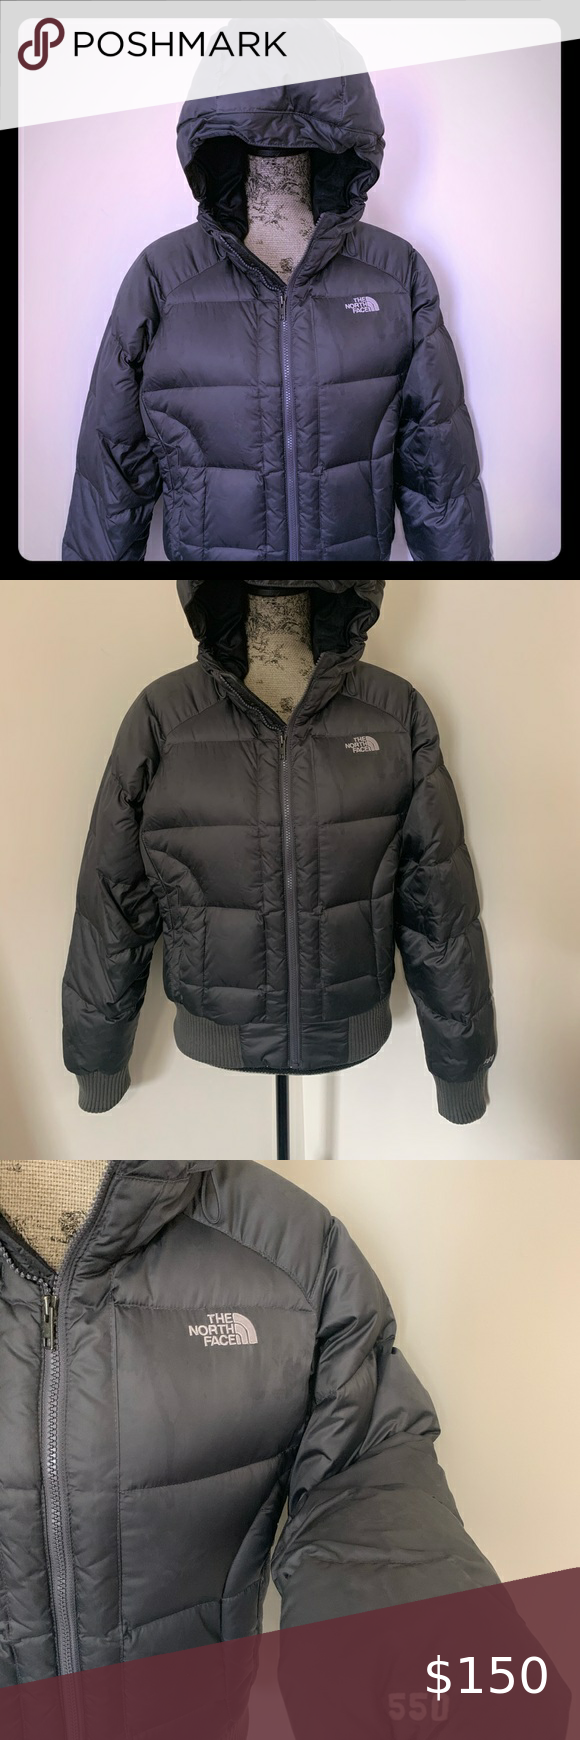 Like New Woman S The North Face Jacket In 2020 North Face Jacket The North Face Black North Face [ 1740 x 580 Pixel ]